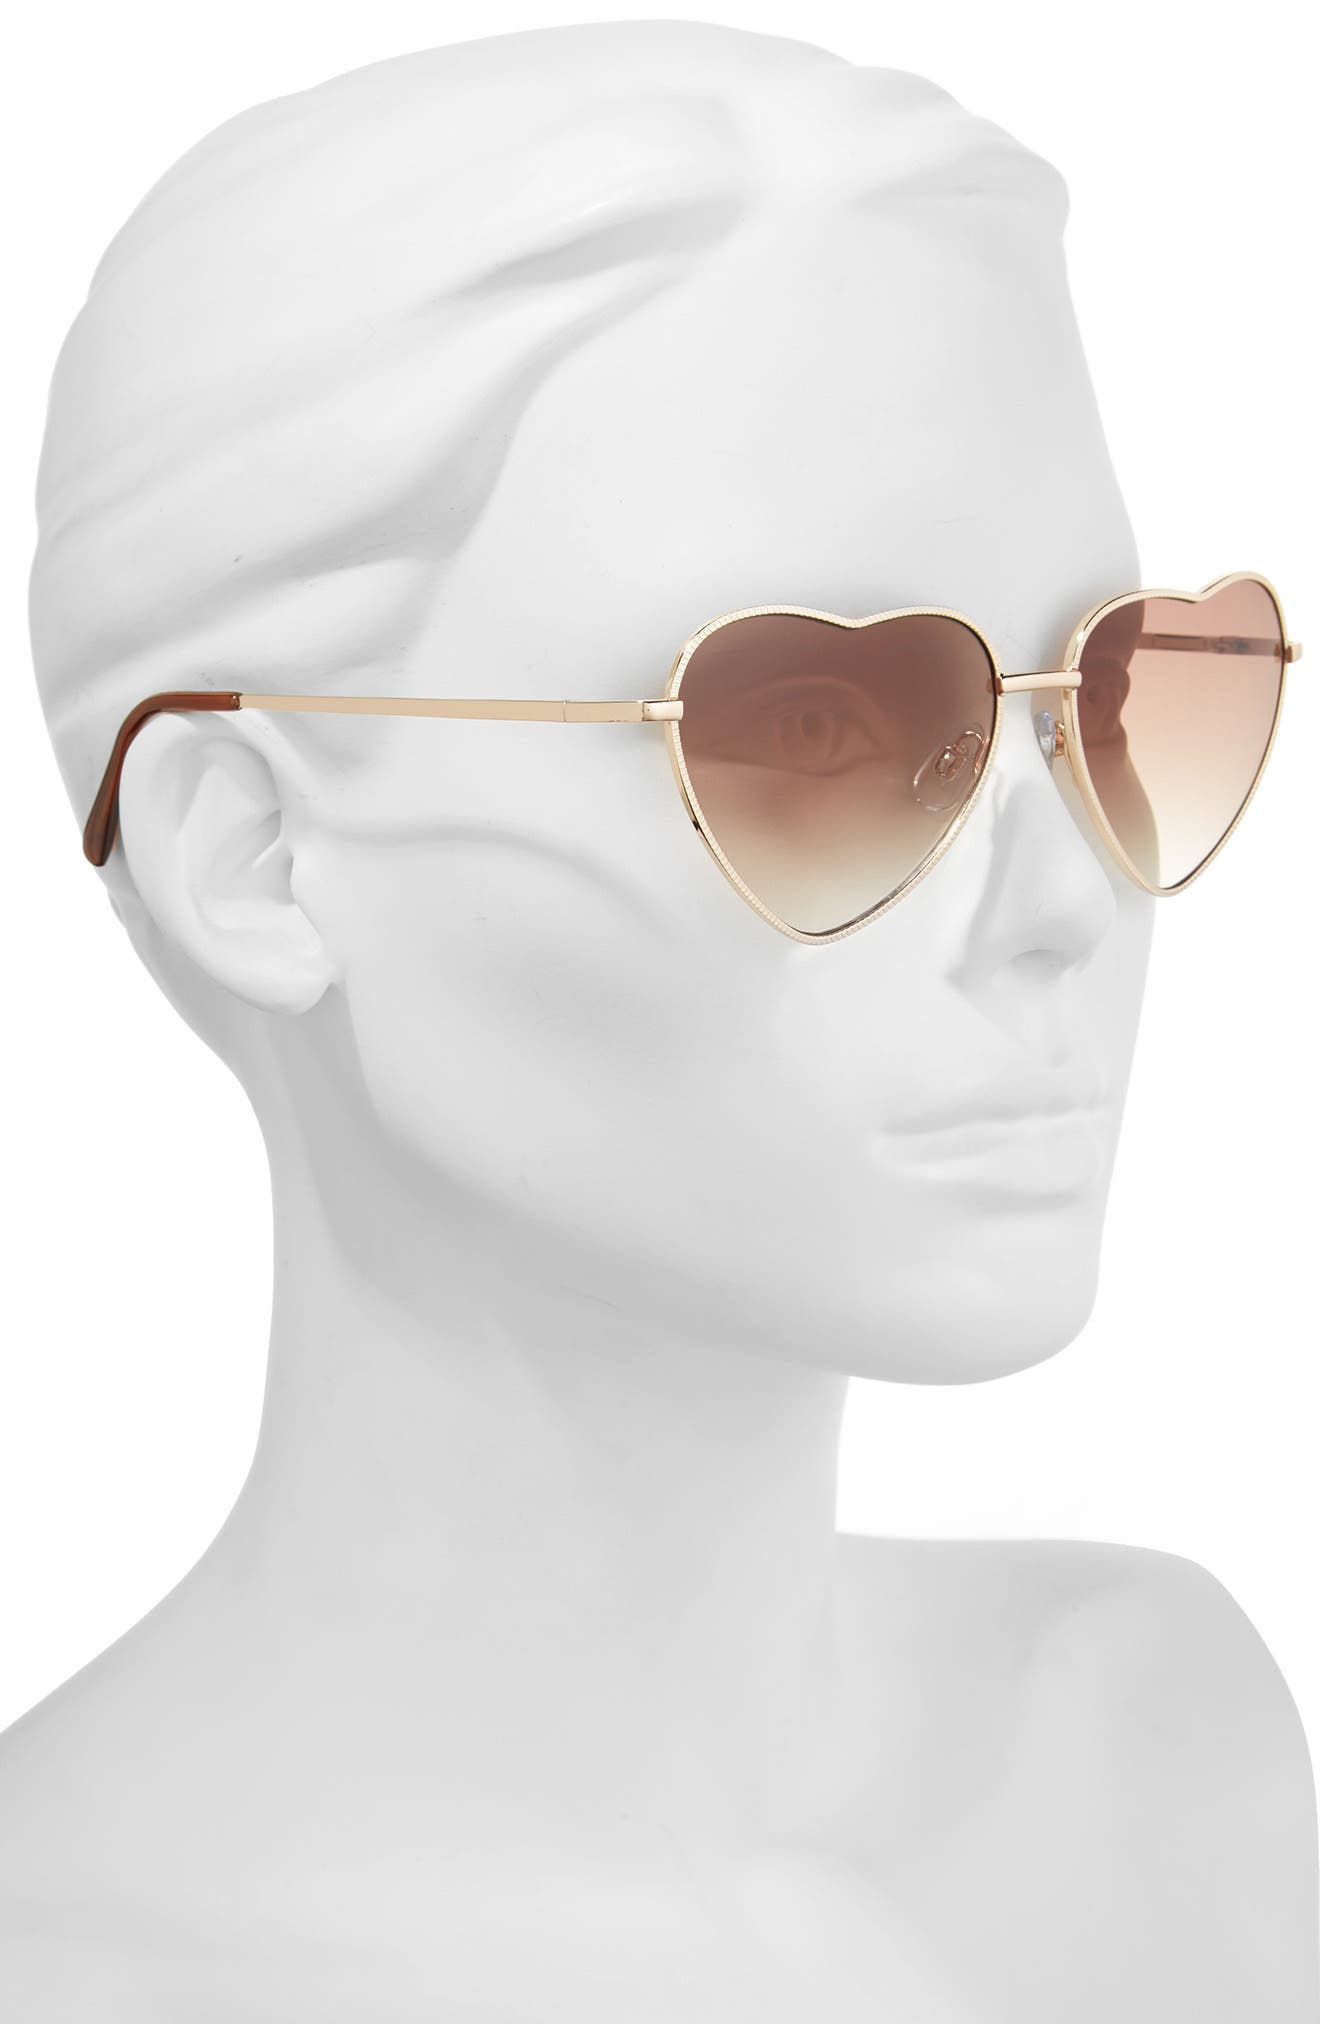 Heart Shaped 58mm Sunglasses,                             Alternate thumbnail 3, color,                             GOLD/ BROWN